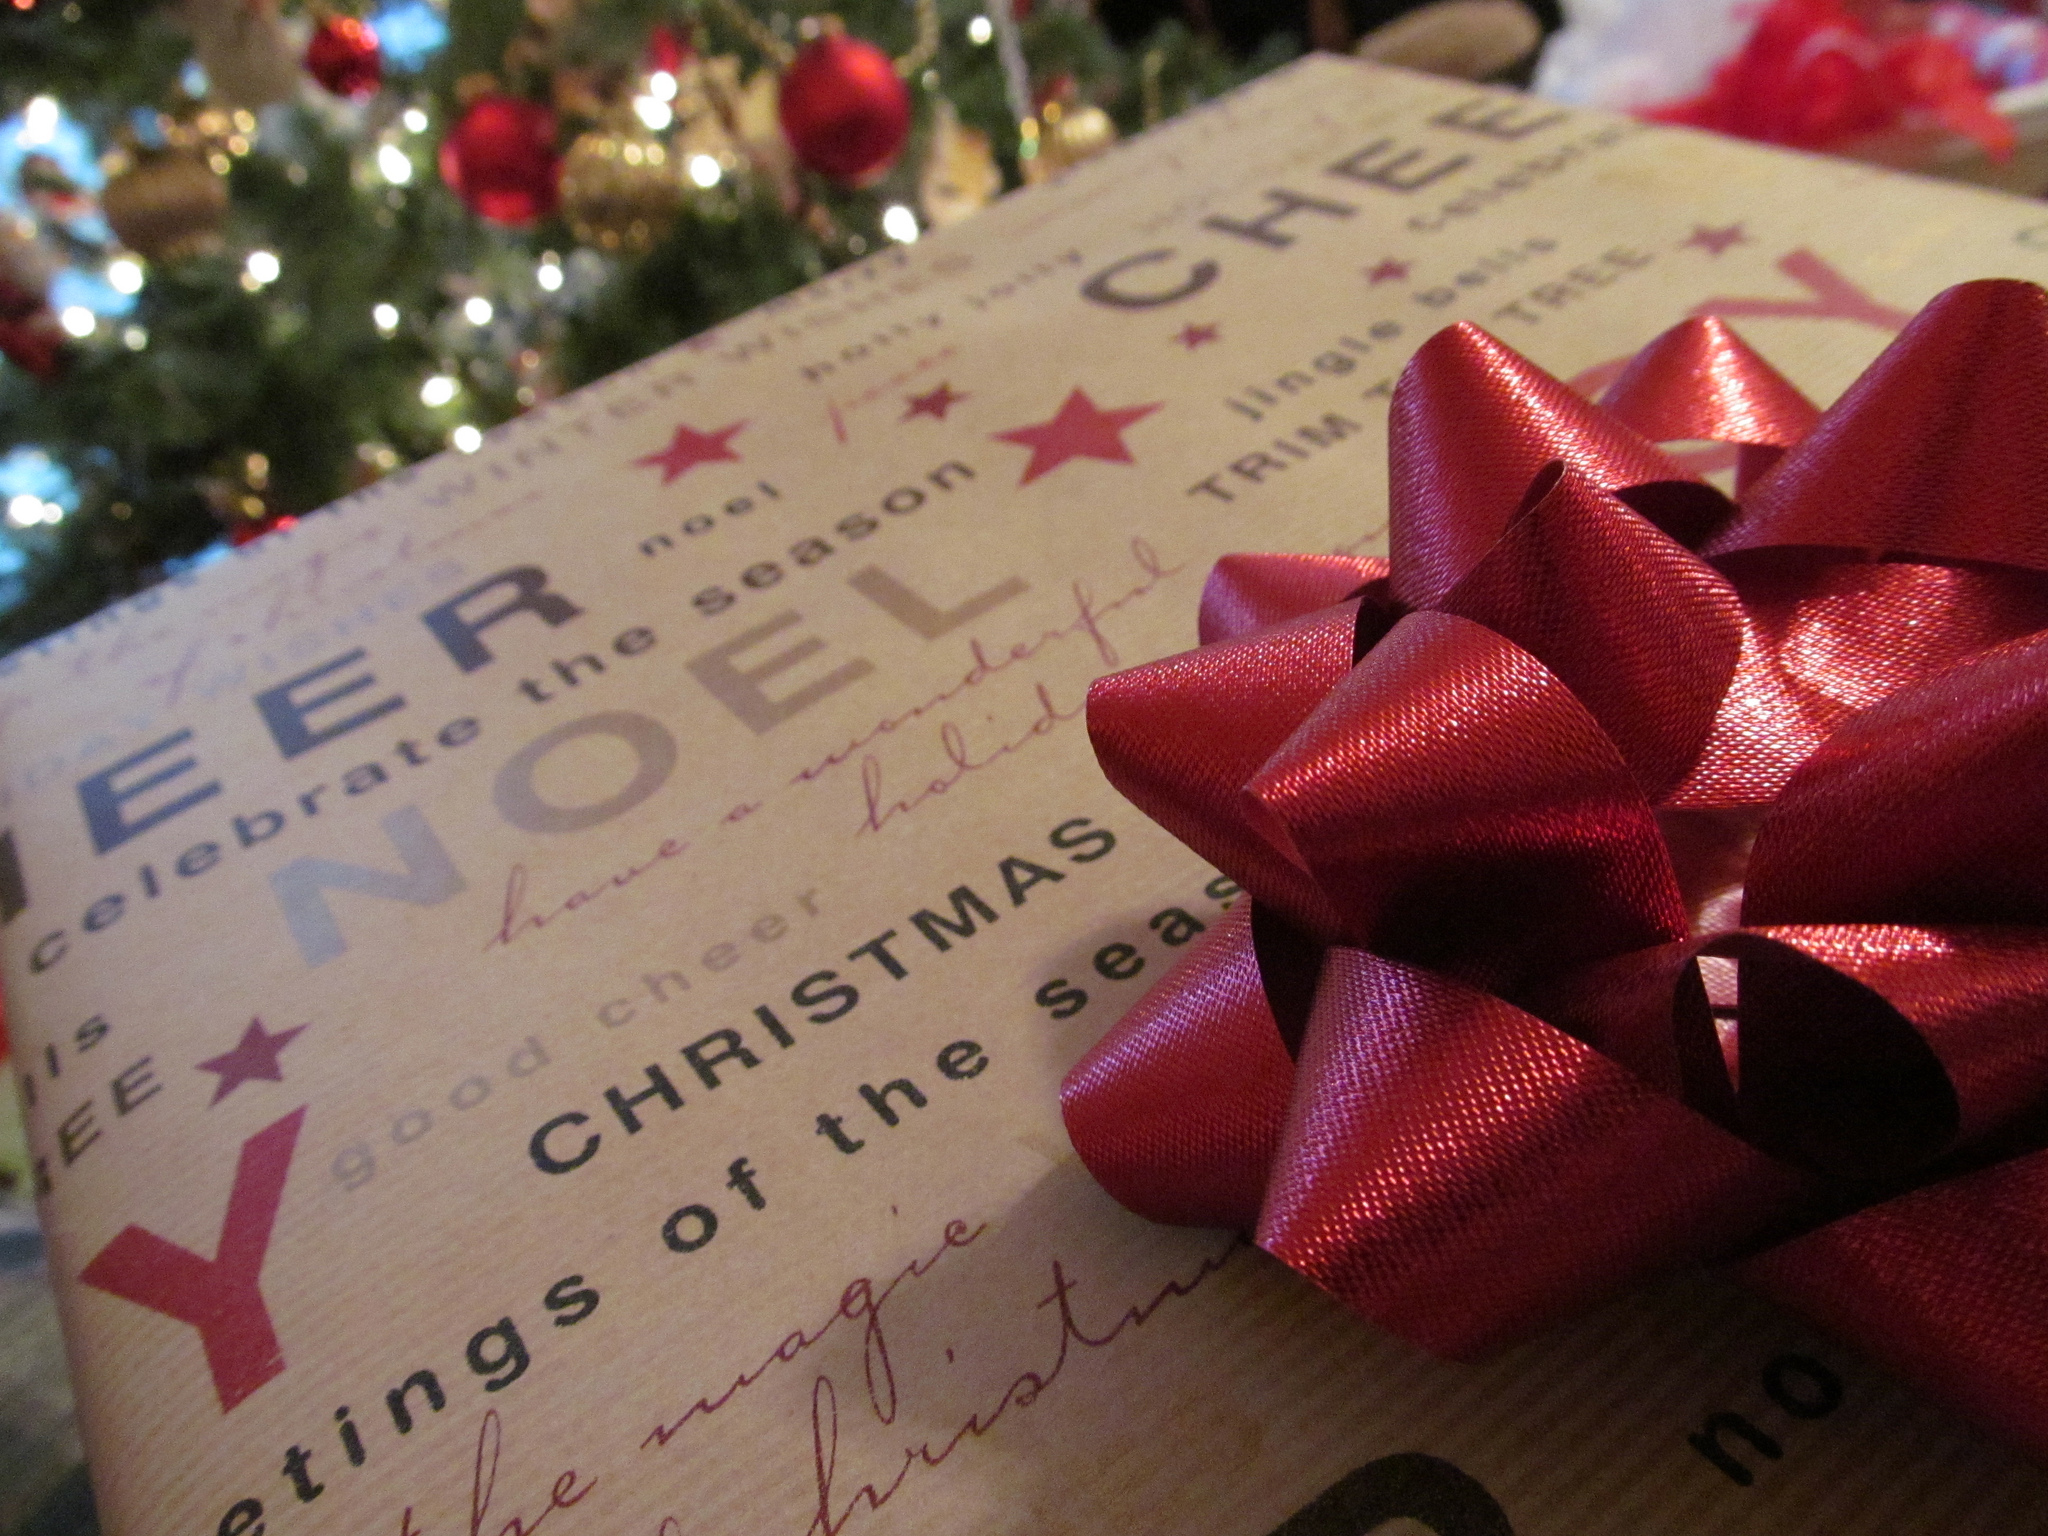 A personalised gift will make for a pleasant surprise this Christmas ... photo by CC user mac9416 on Flickr